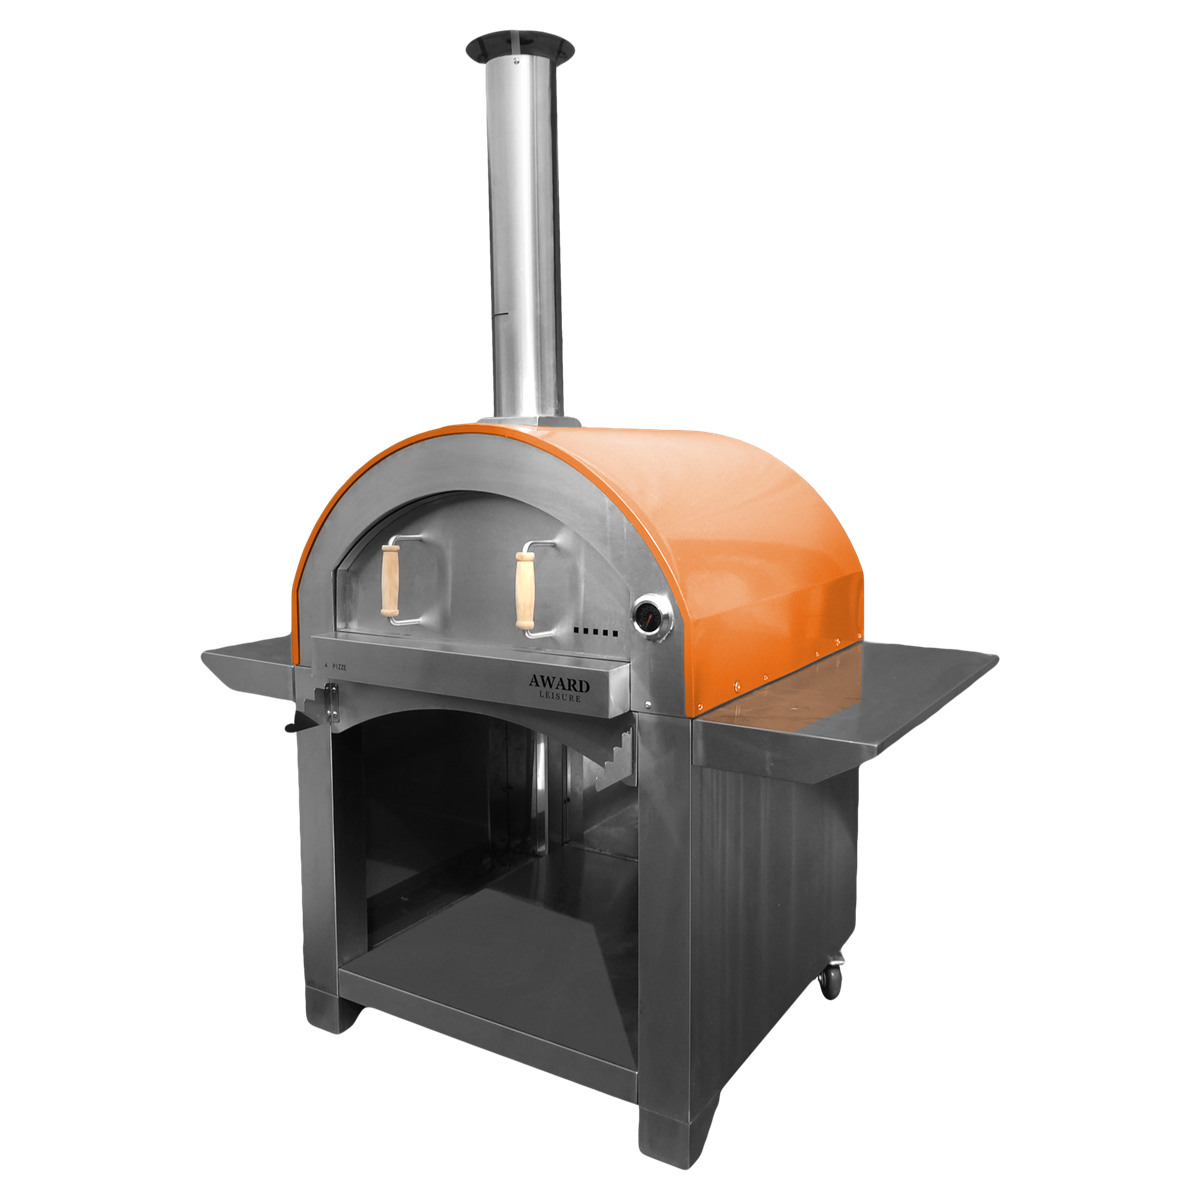 4 Pizze Pizza Oven